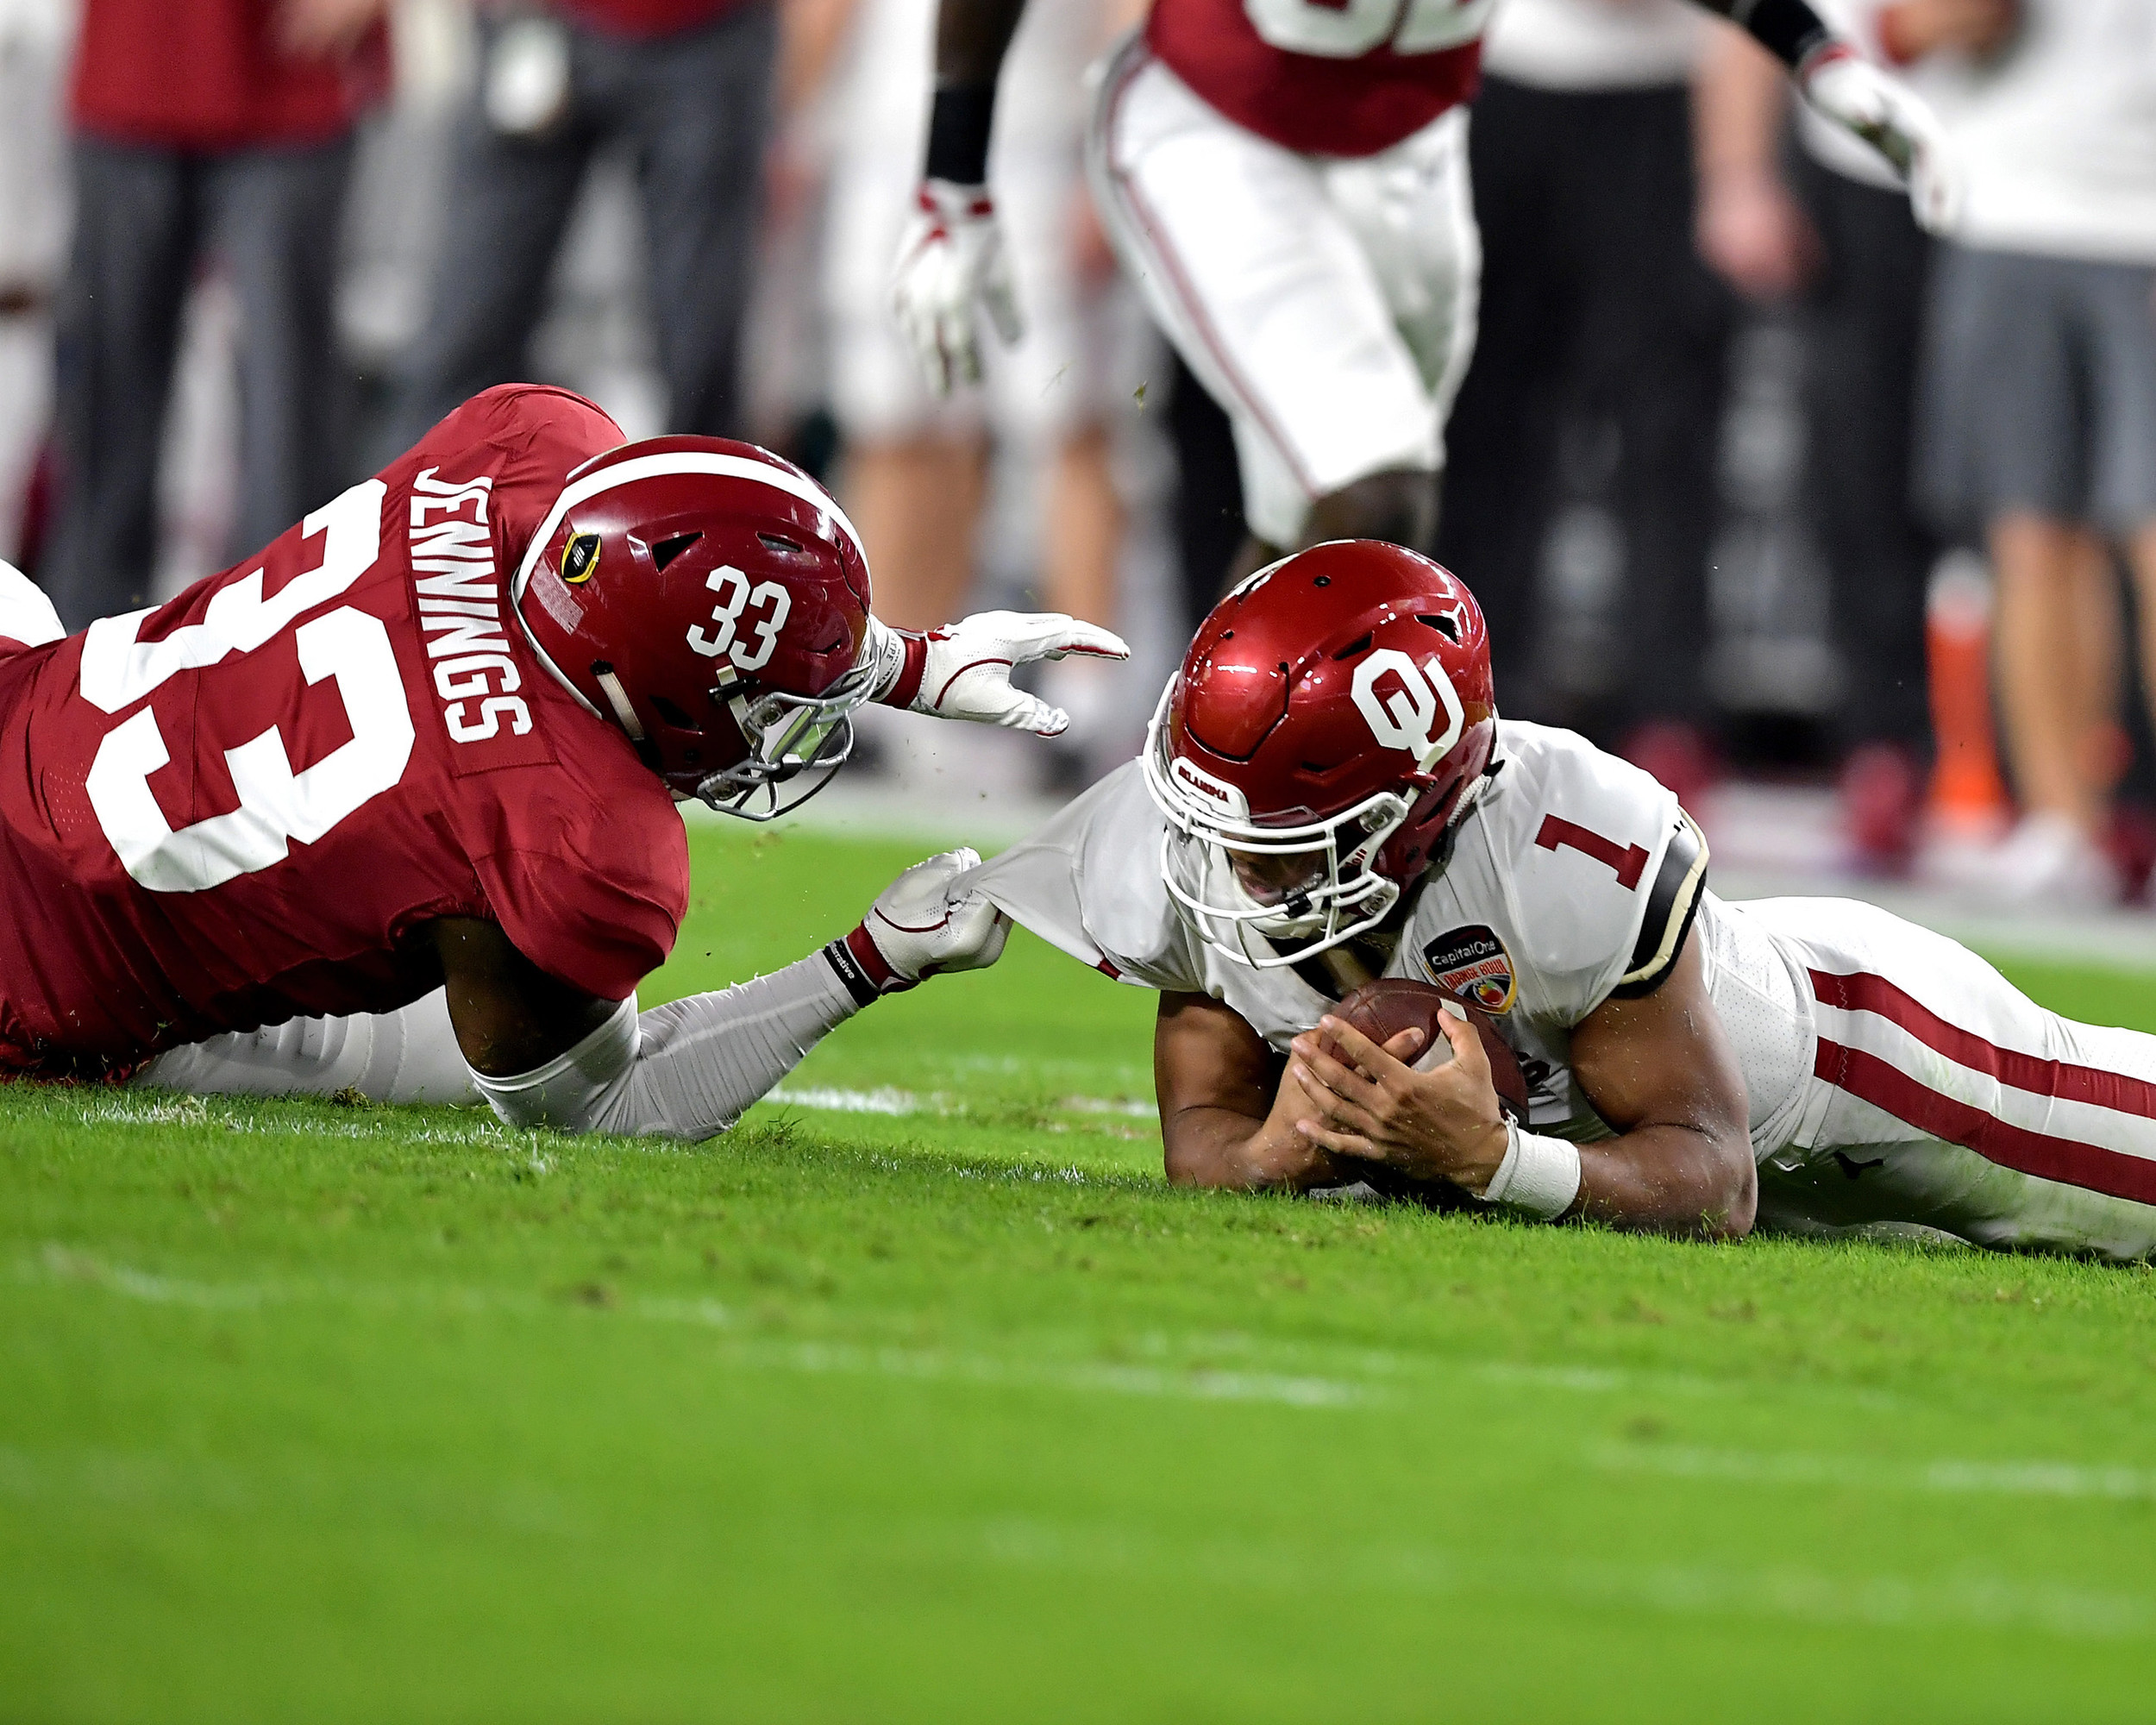 Alabama Crimson Tide linebacker Anfernee Jennings (33) sacks Oklahoma Sooners quarterback Kyler Murray in the first quarter of the Capital One Orange Bowl at Hard Rock Stadium in Miami Gardens, Fla., Saturday, Dec. 29, 2018. Alabama wins 45-34. (Photo by Lee Walls)